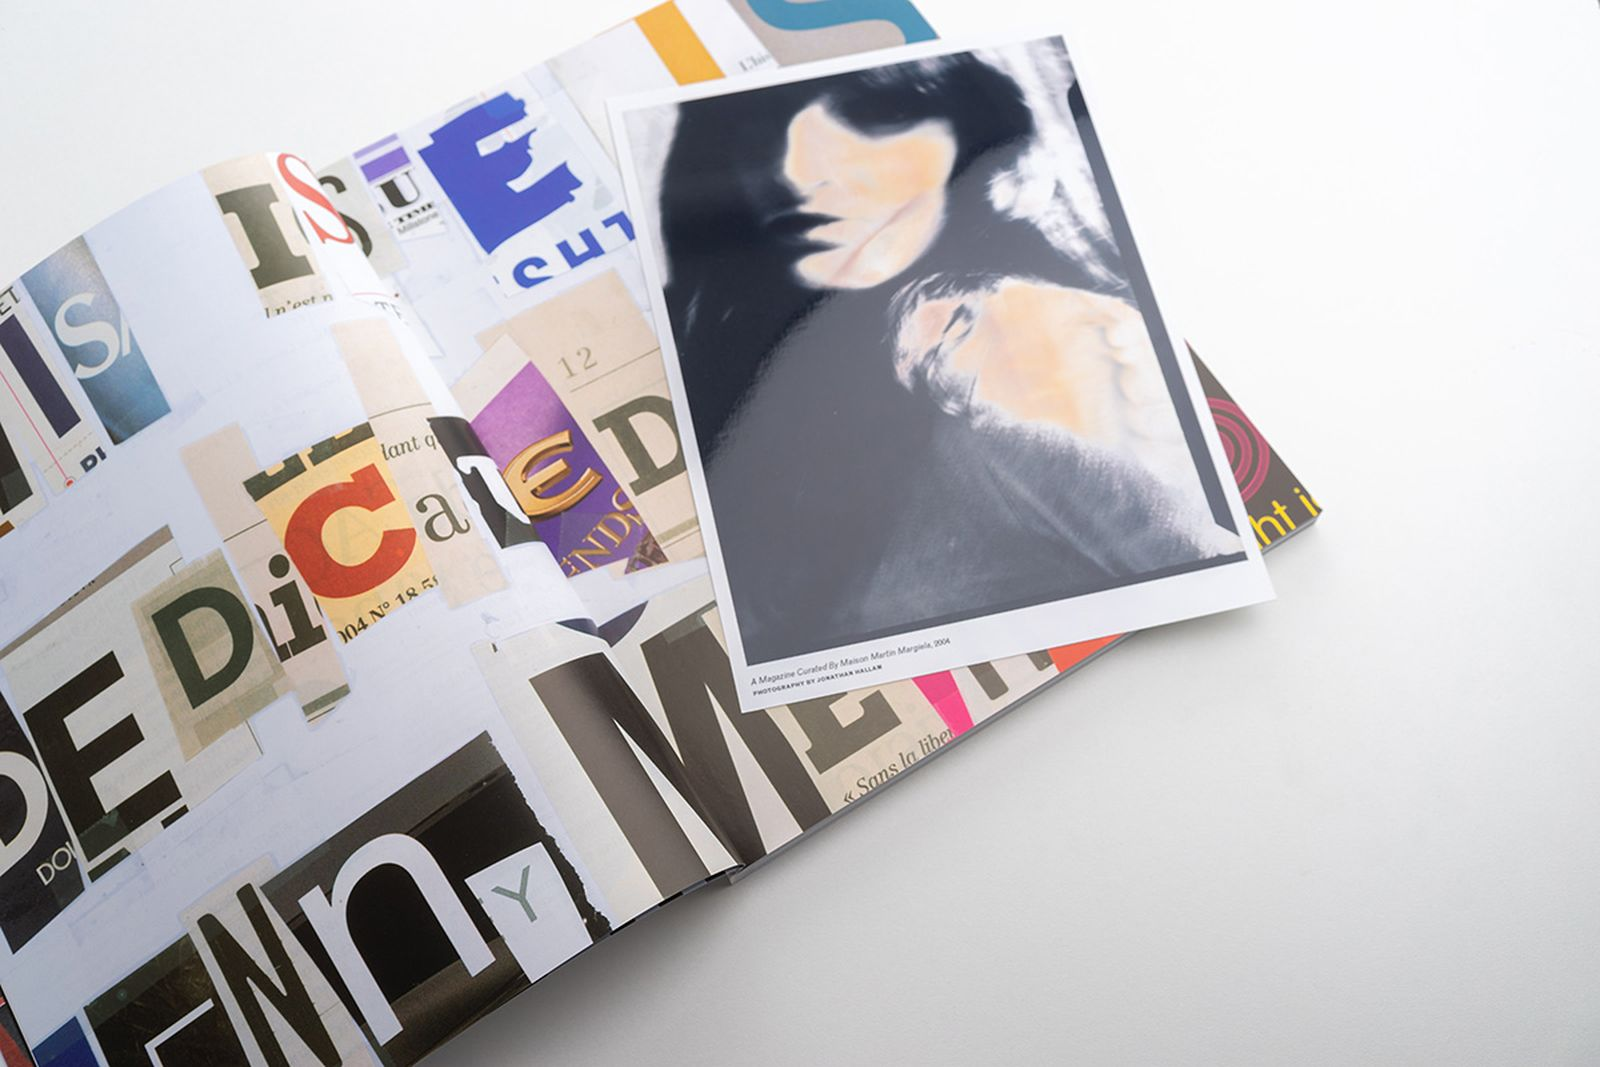 a-magazine-curated-by-maison-martin-margiela-08